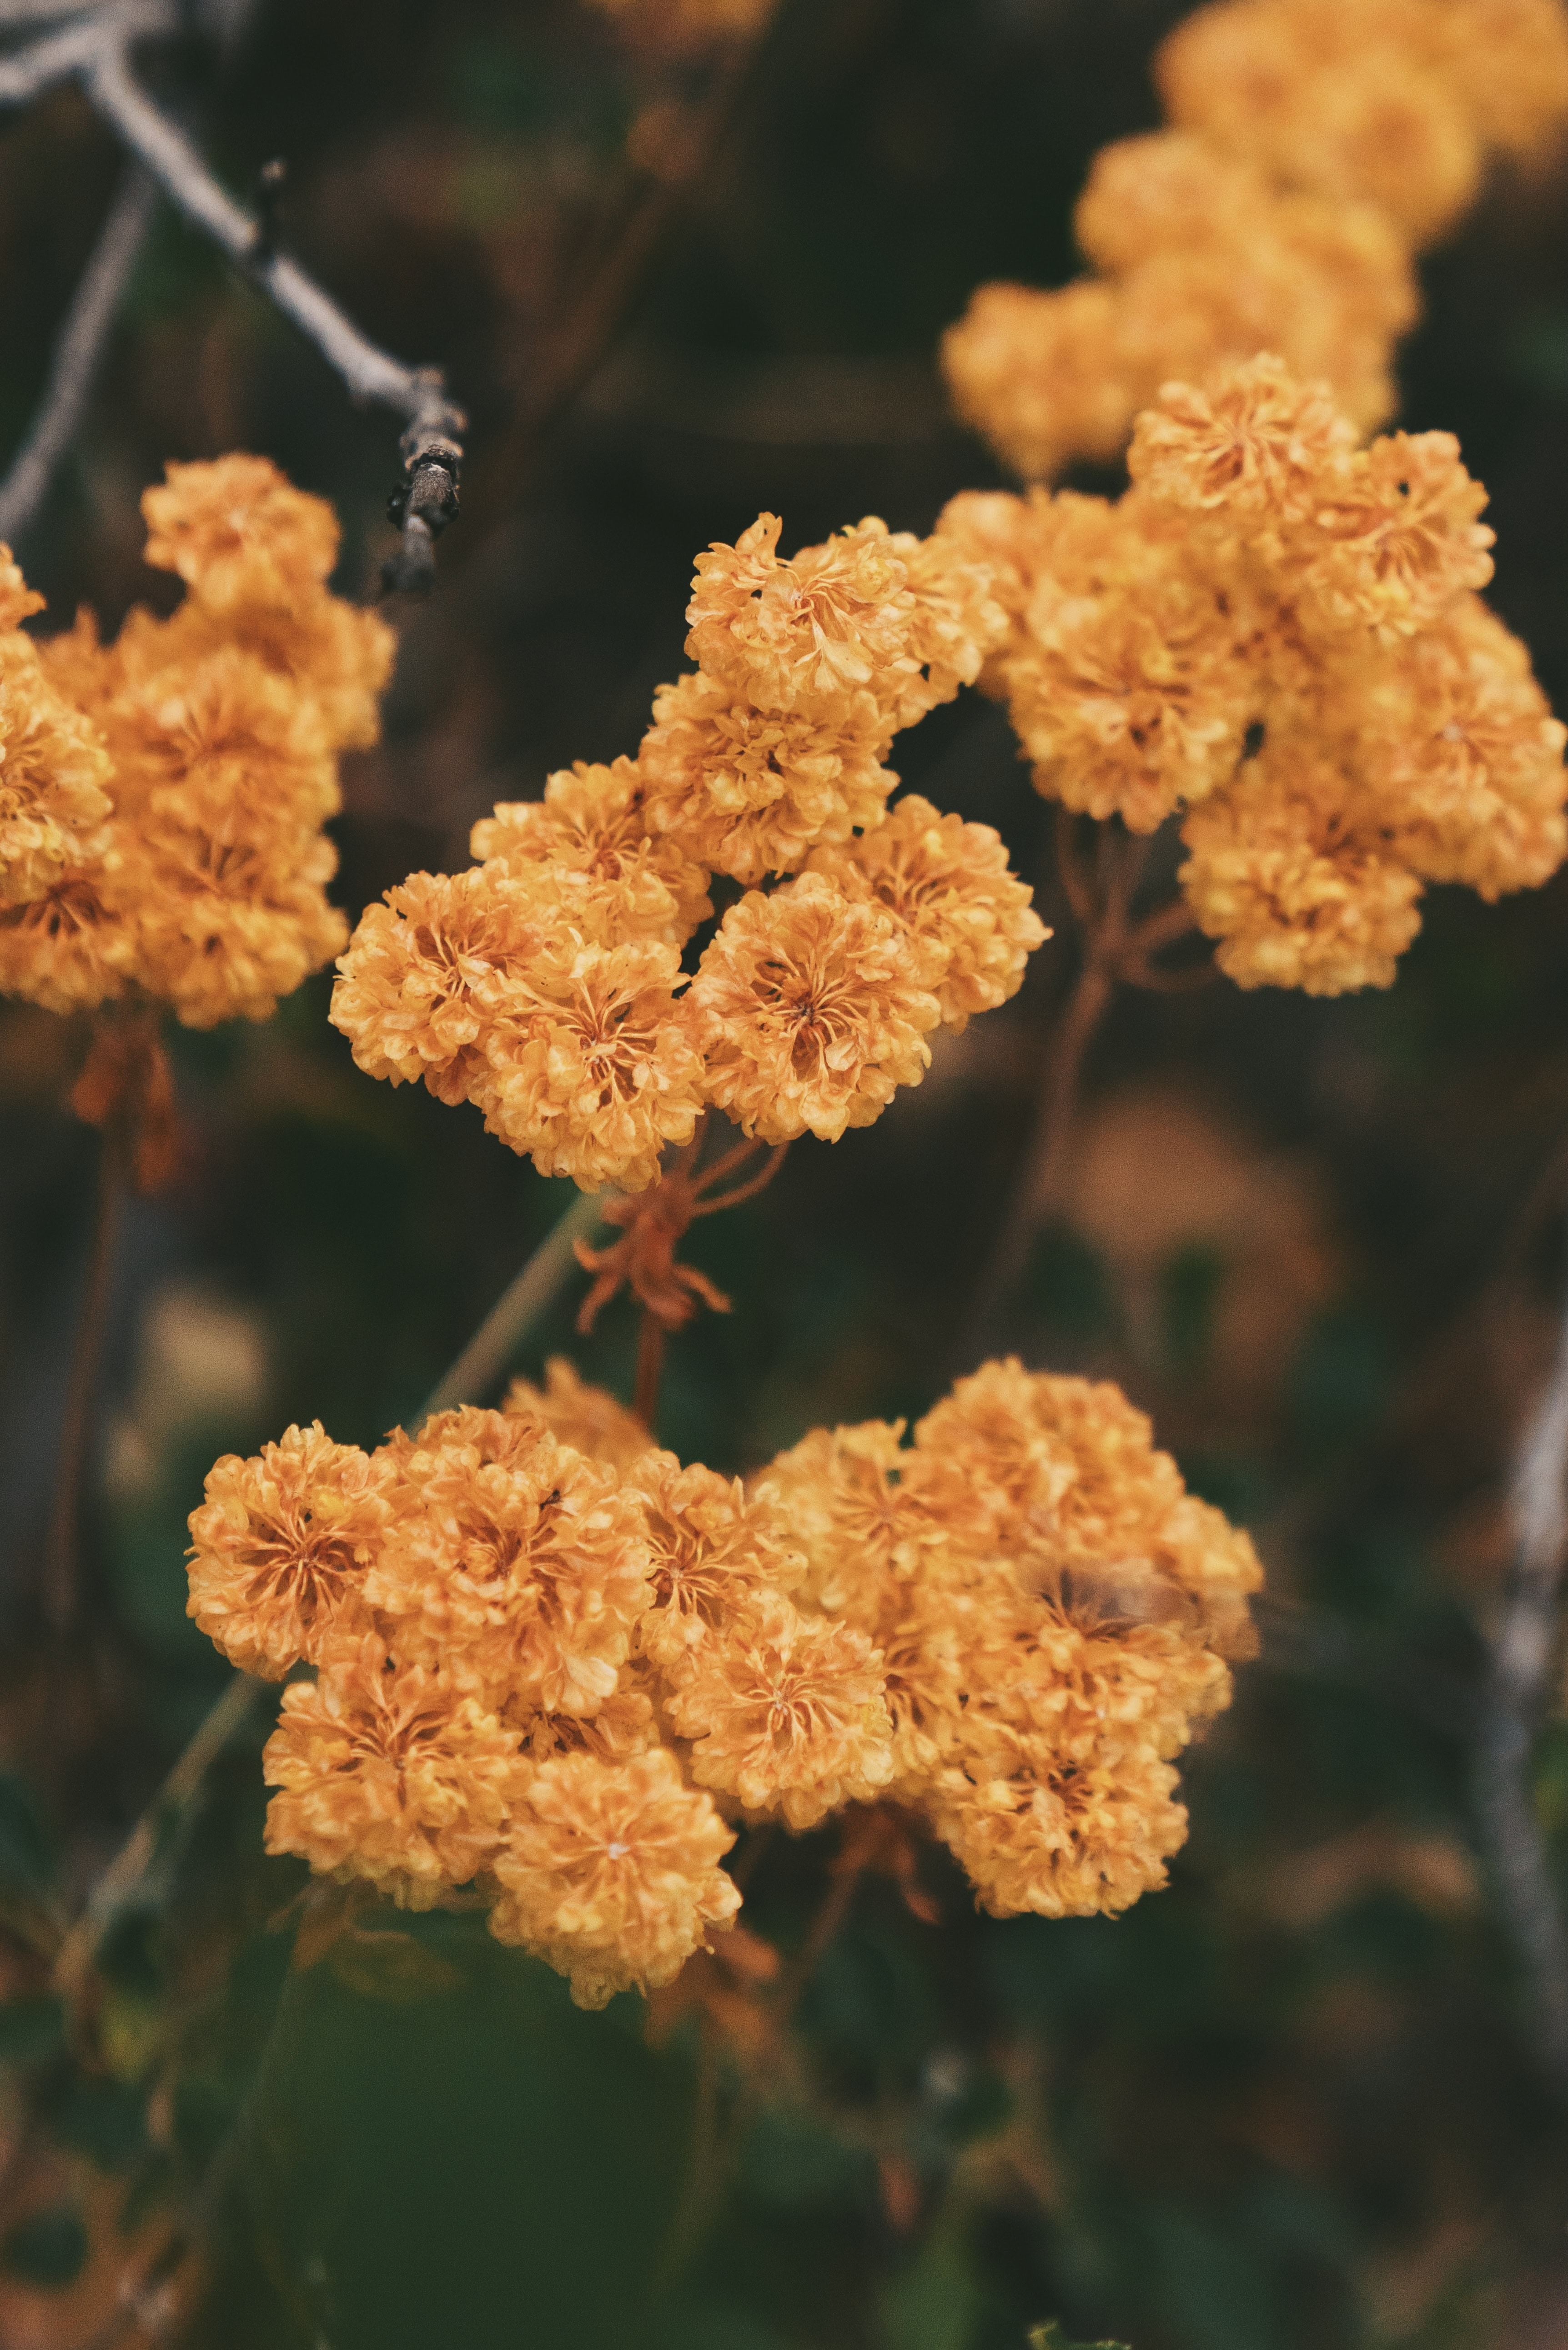 111805 download wallpaper Flowers, Dried Flowers, Dry Flowers, Autumn, Dry screensavers and pictures for free